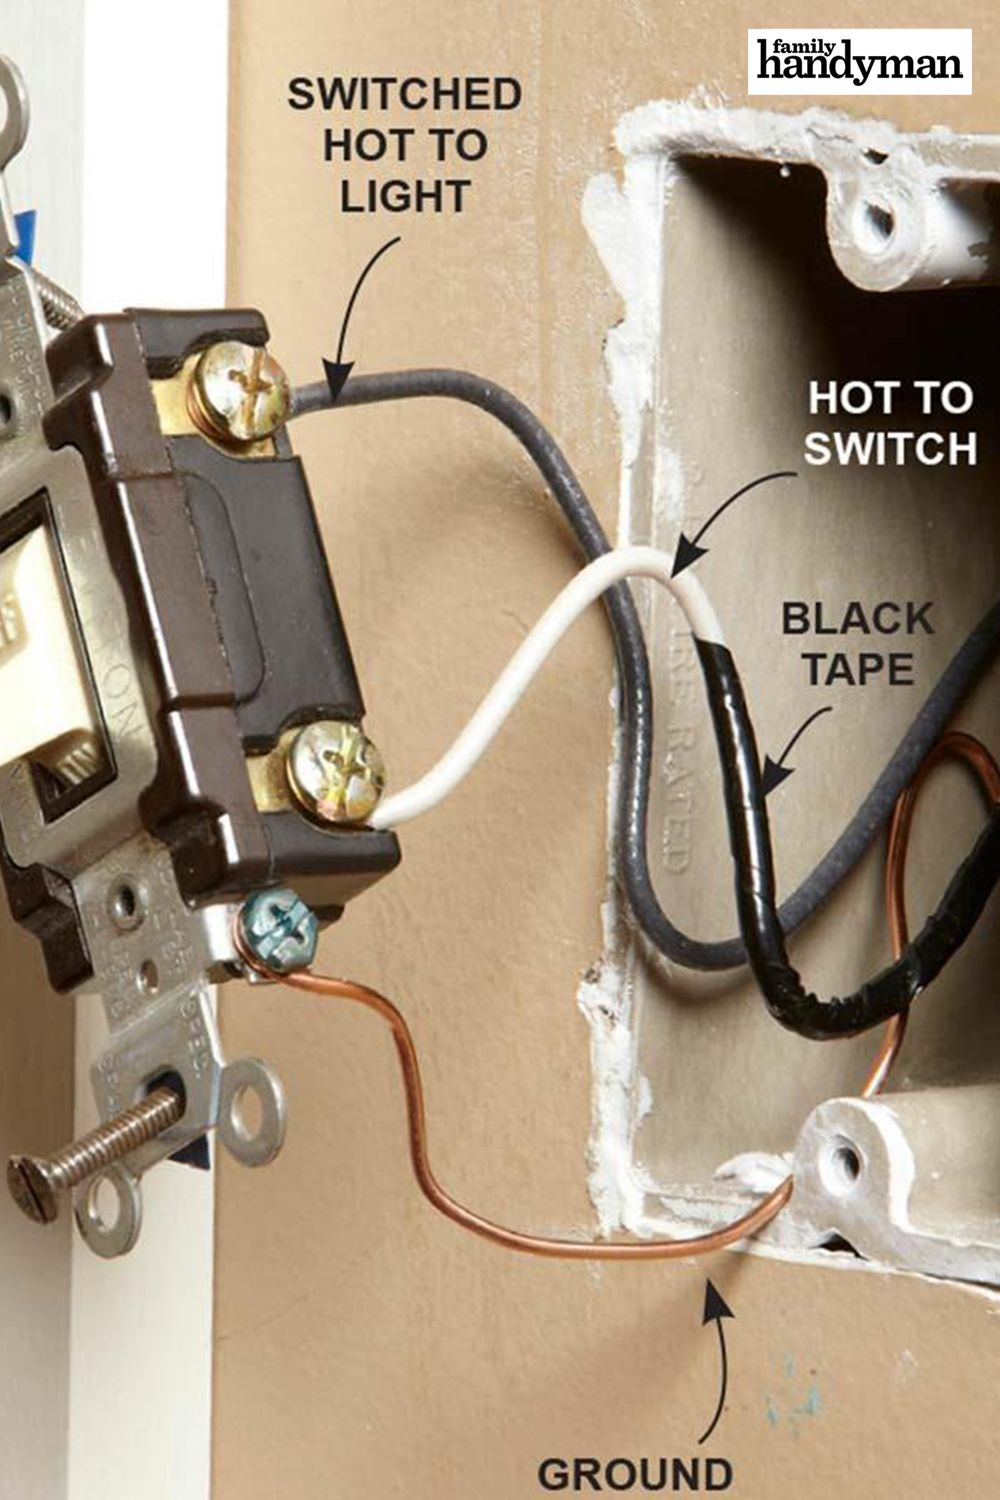 27 Top Tips for Wiring Switches and Outlets Yourself   Home electrical  wiring, House wiring, Diy electricalPinterest